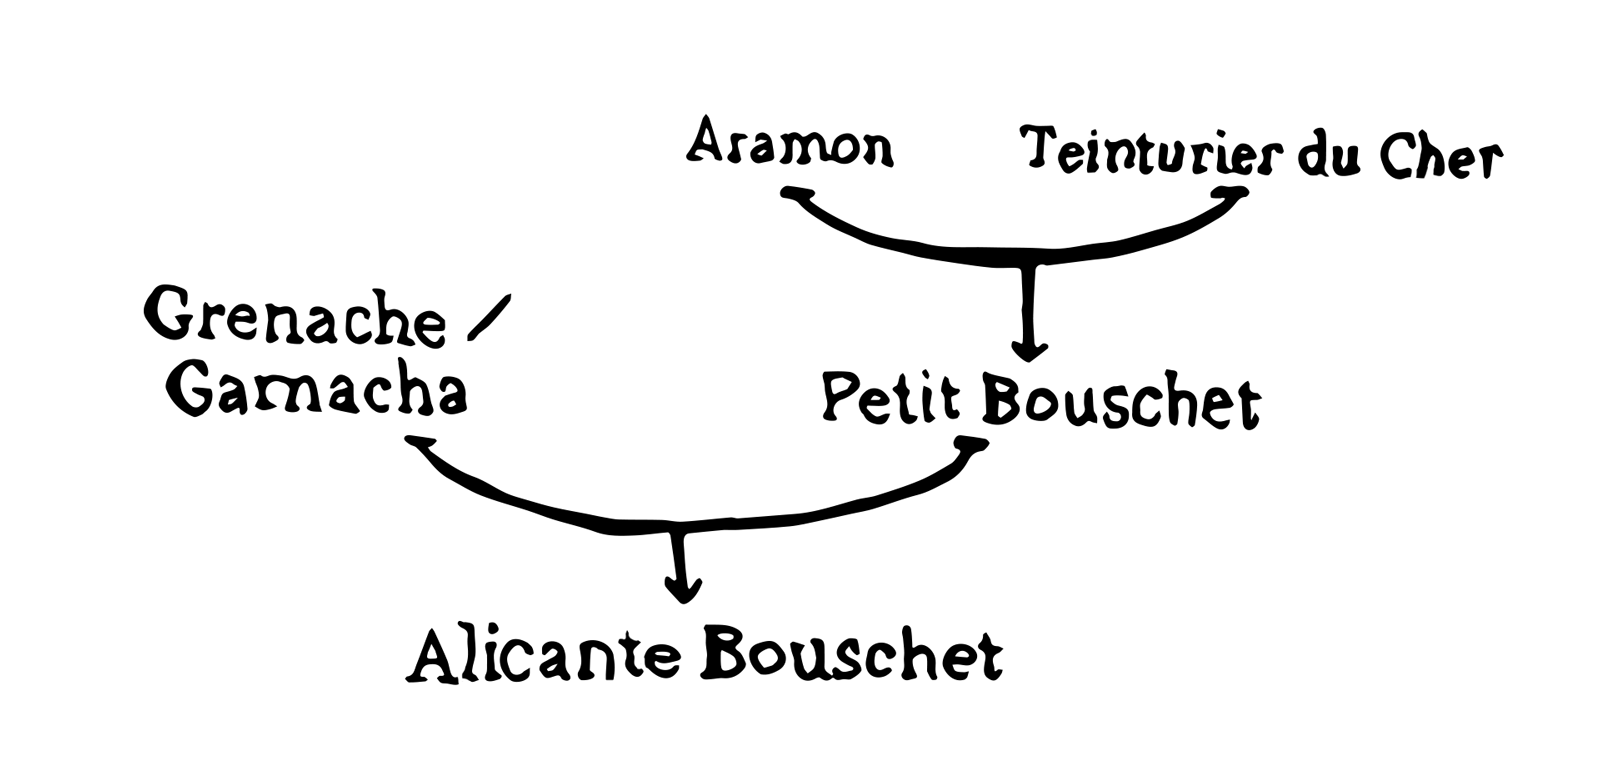 Alicante Bouschet Family tree illustration by Wine Folly